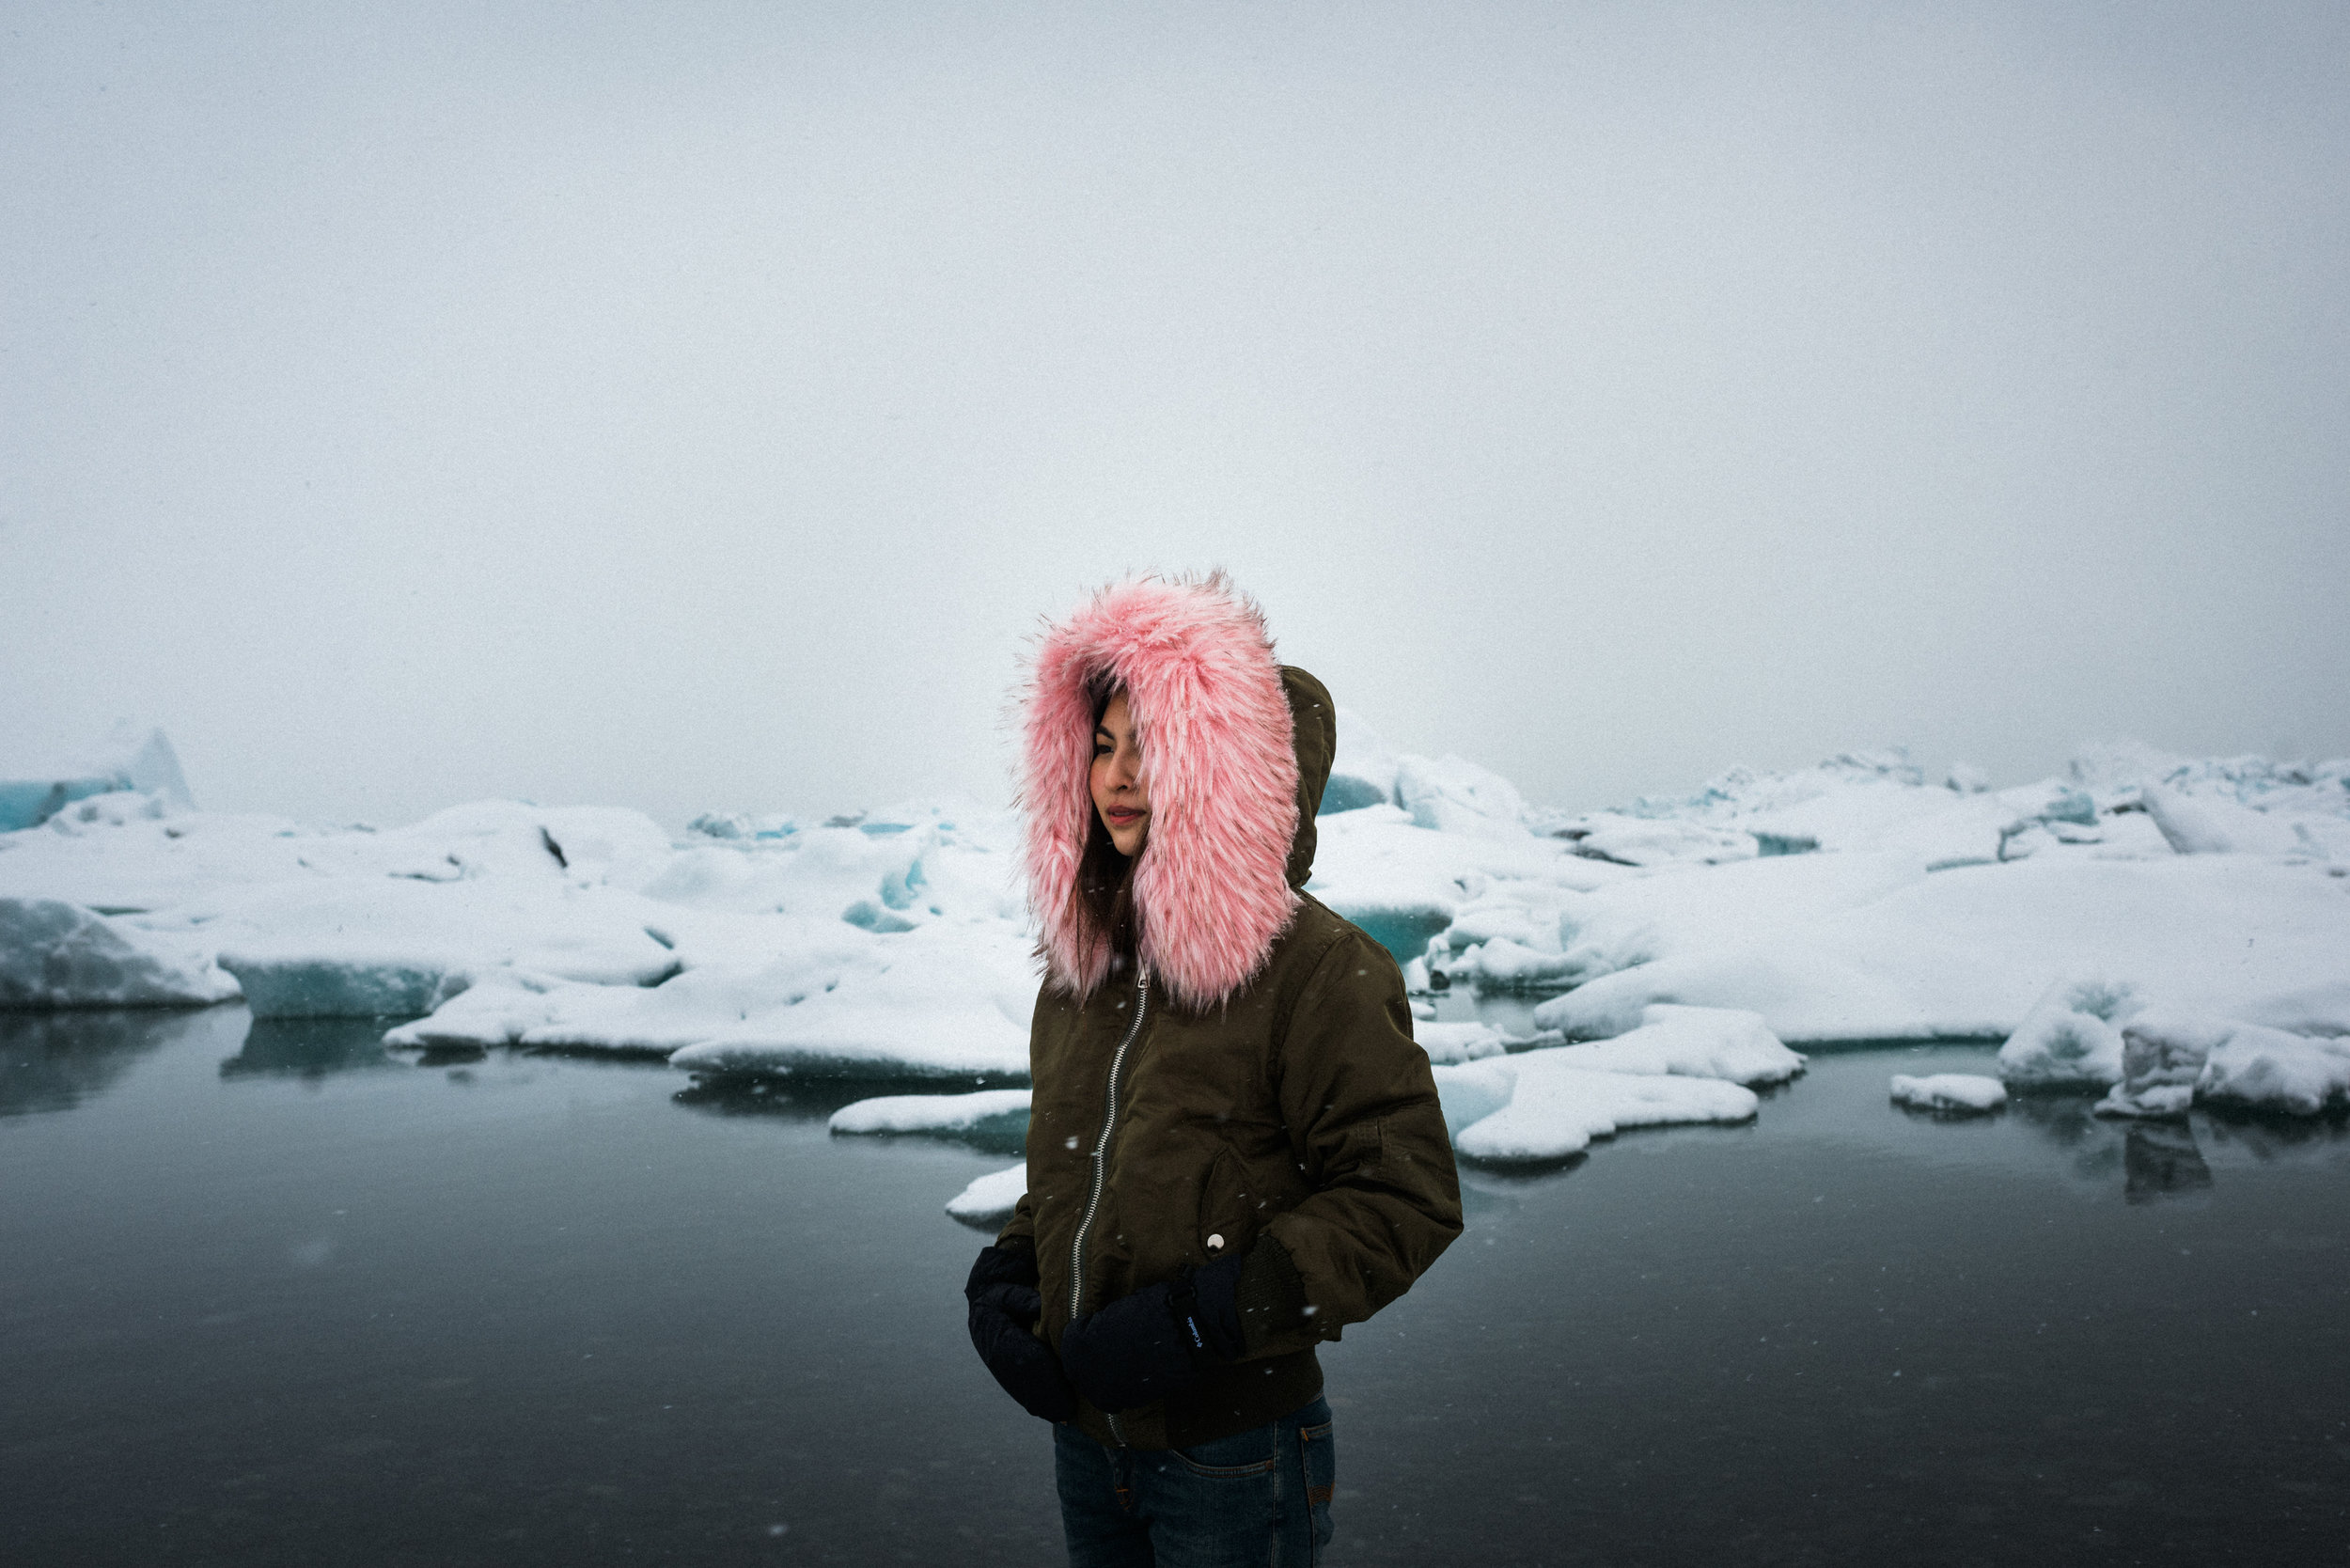 ICELAND_WOMAN_PHOTOGRAPHER_TARASHUPE_OUTDOOR_PHOTOGRAPHY_089.jpg